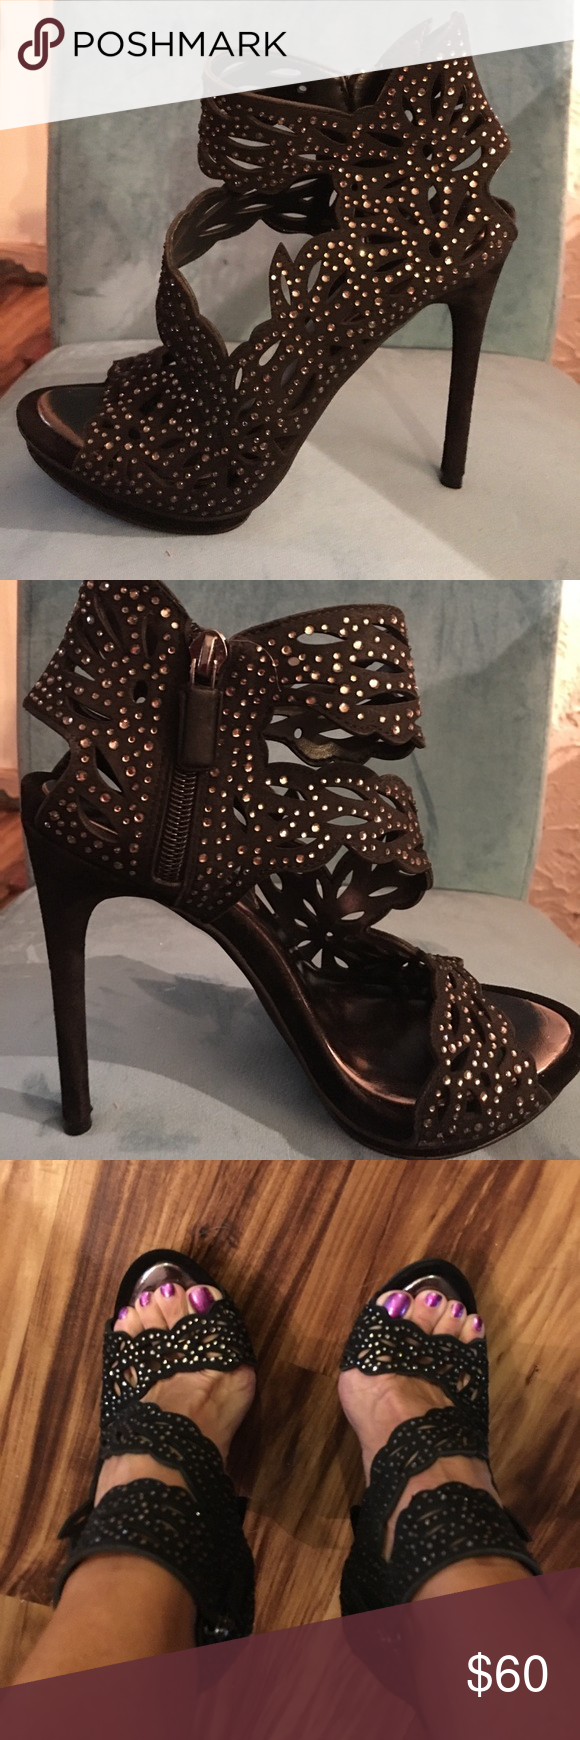 """BCBG Maxazaria sparkly heels! Stunning and sparkly with beautiful detail! Side zip...5-5 1/2"""" heel with 1/2 """" platform under ball of foot. Very sexy BCBGMaxAzria Shoes Heels"""